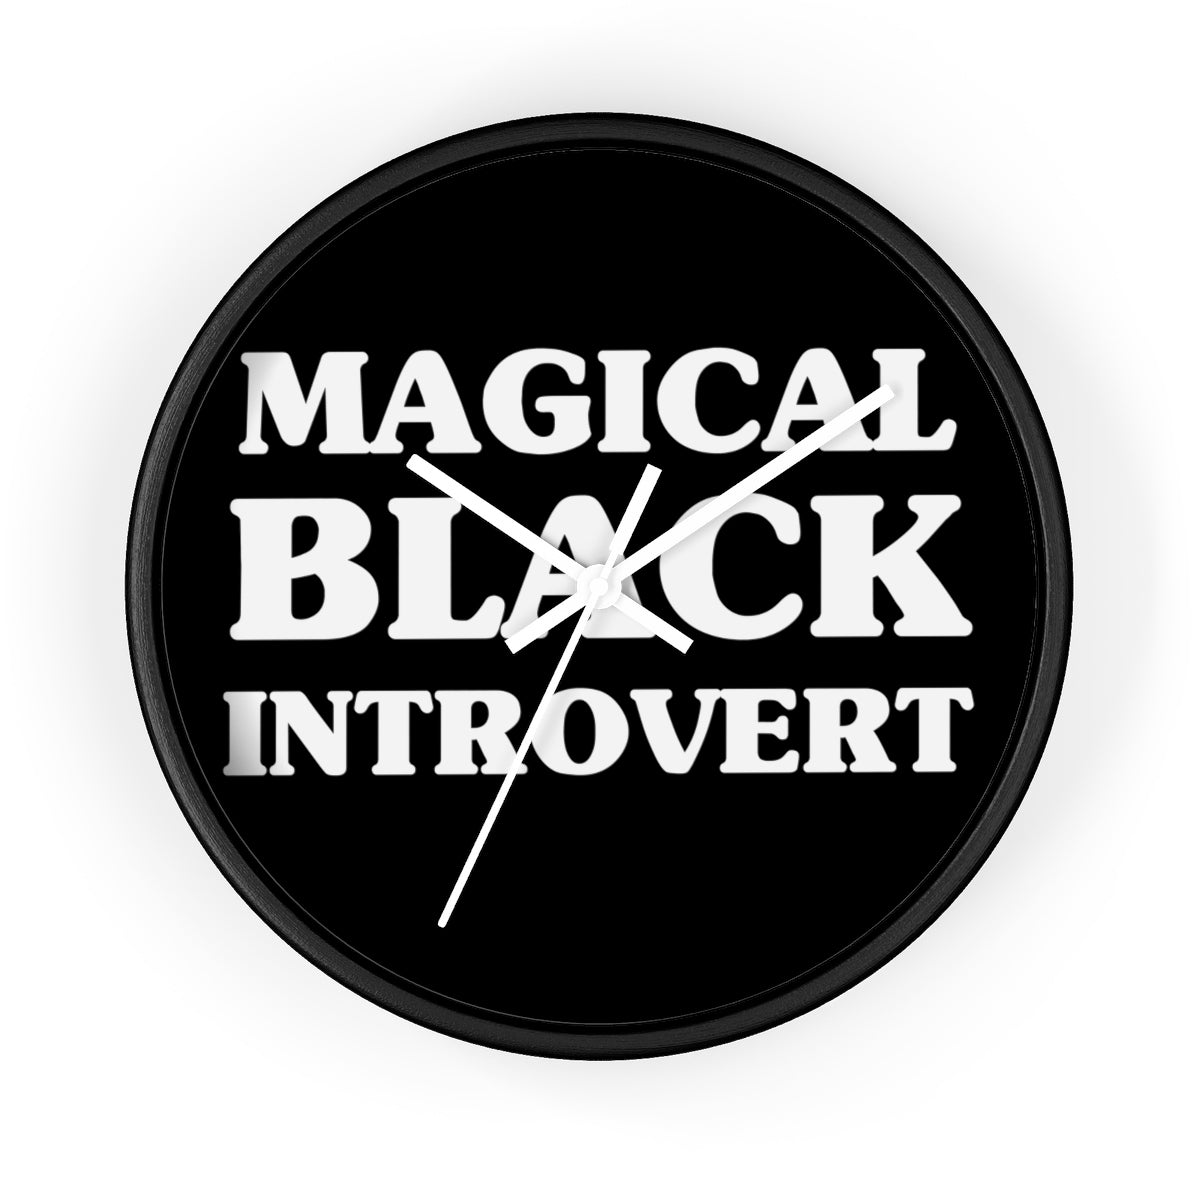 Magical Black Introvert Wall clock